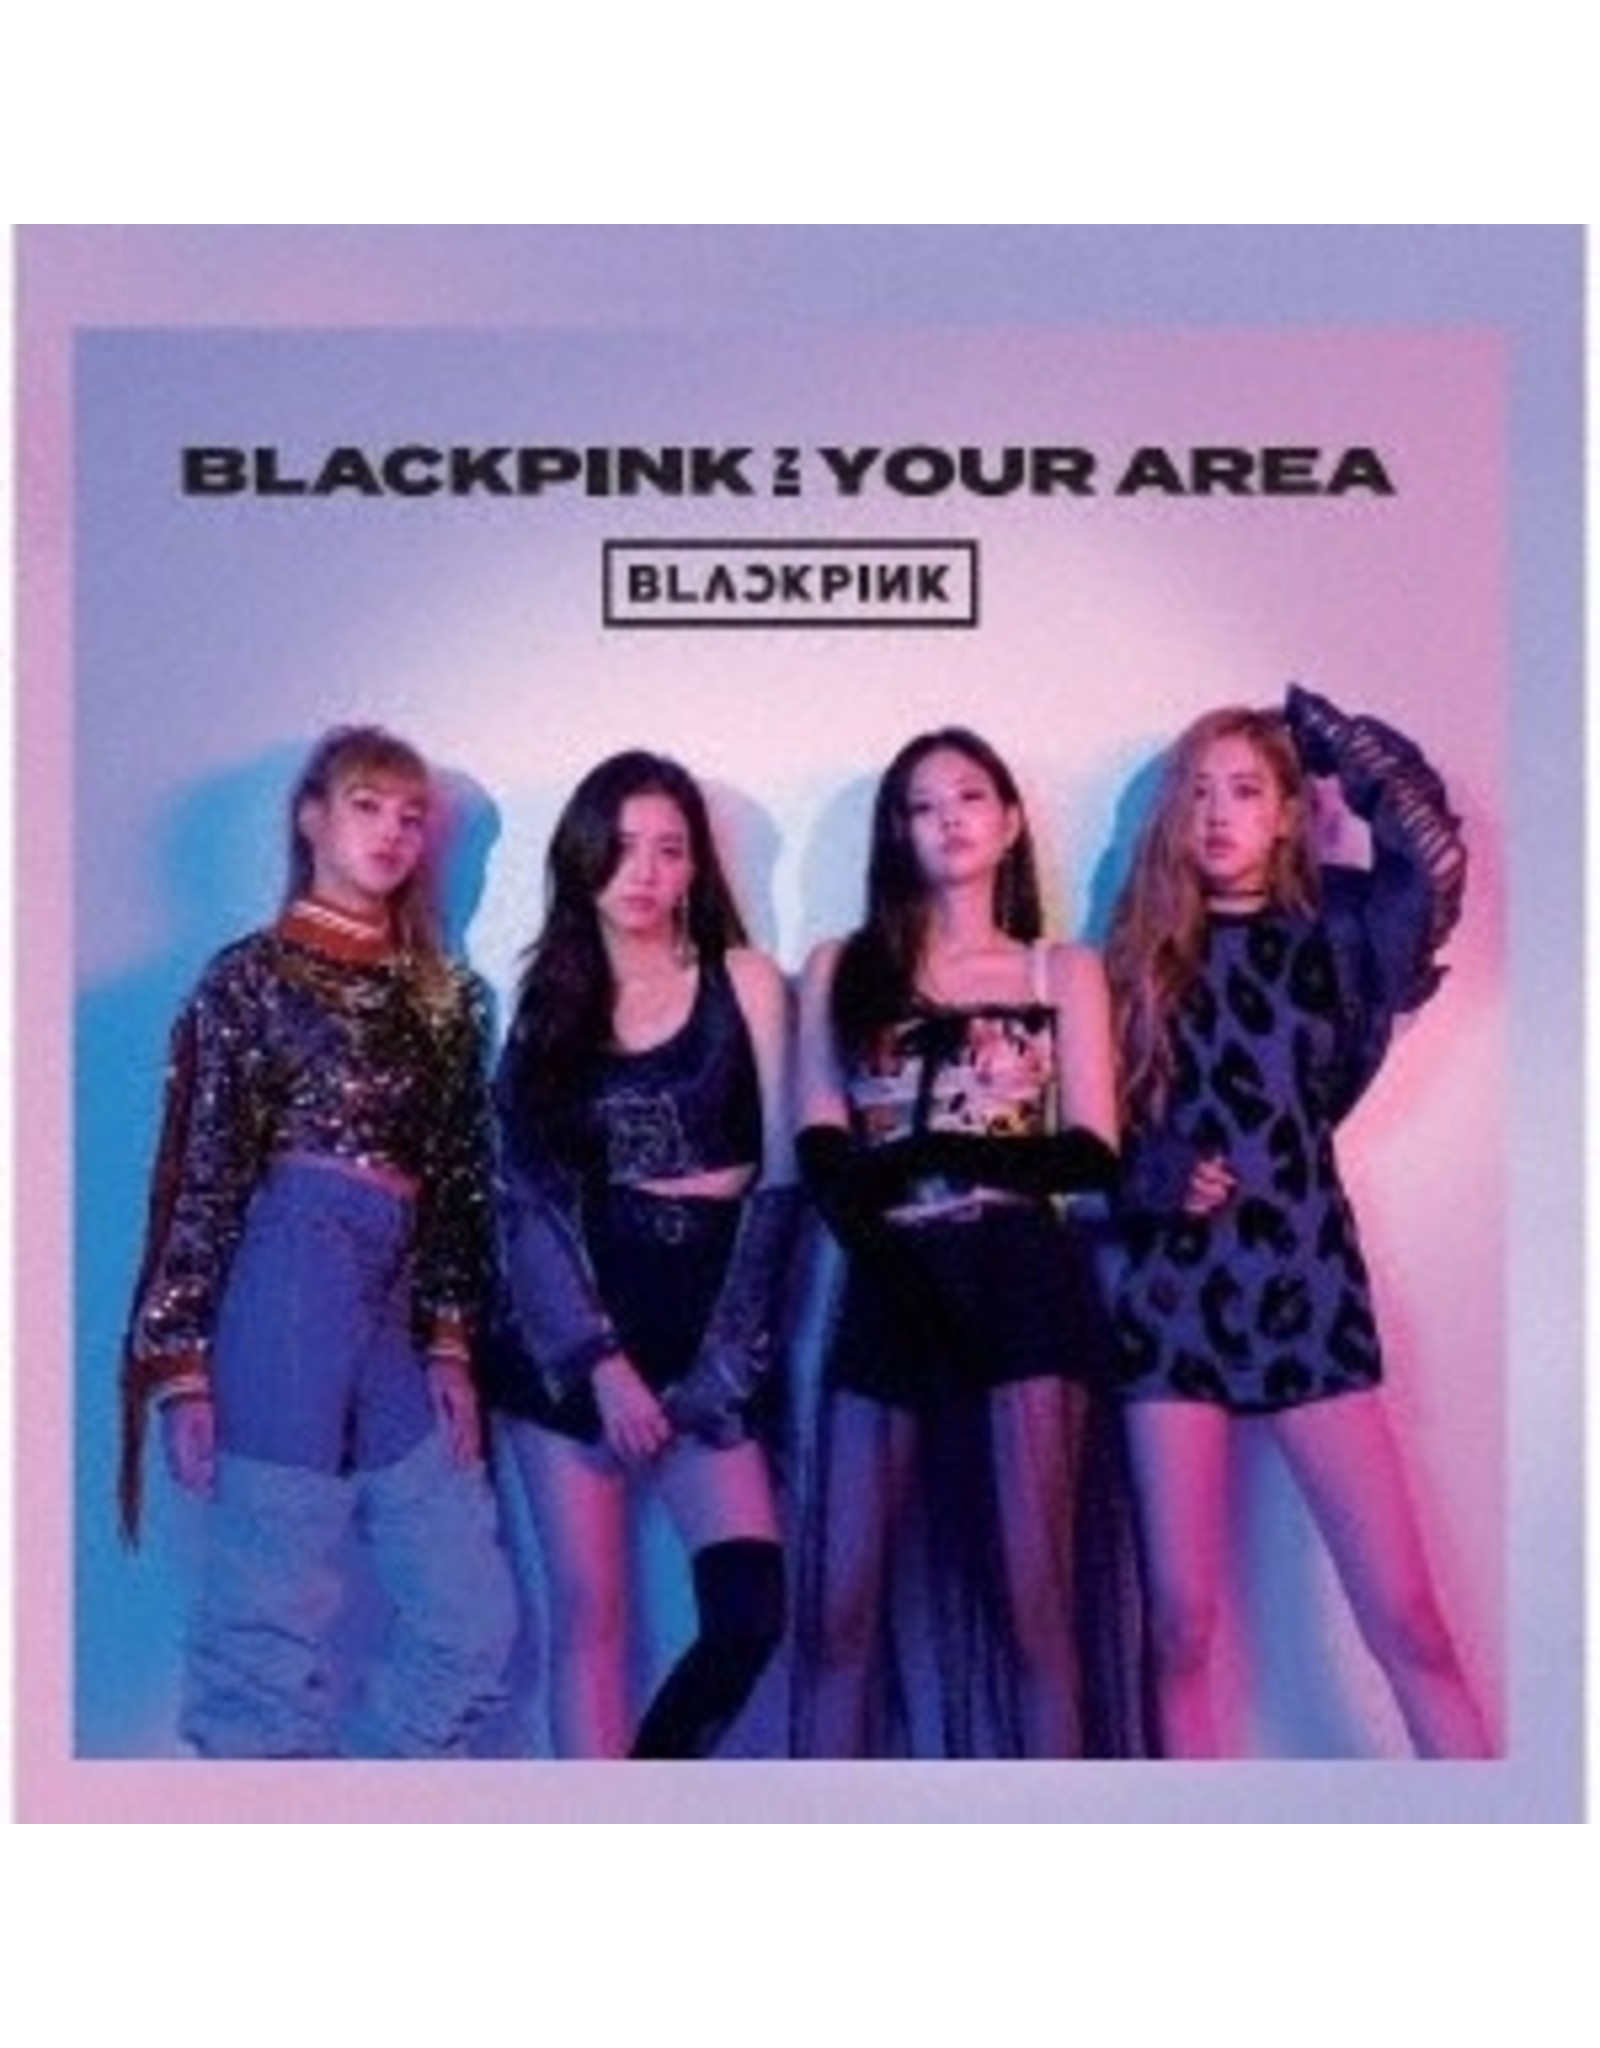 AVEX [CD]BLACKPINK IN YOUR AREA [TRADING CARD FOR 1ST PRESSING ]